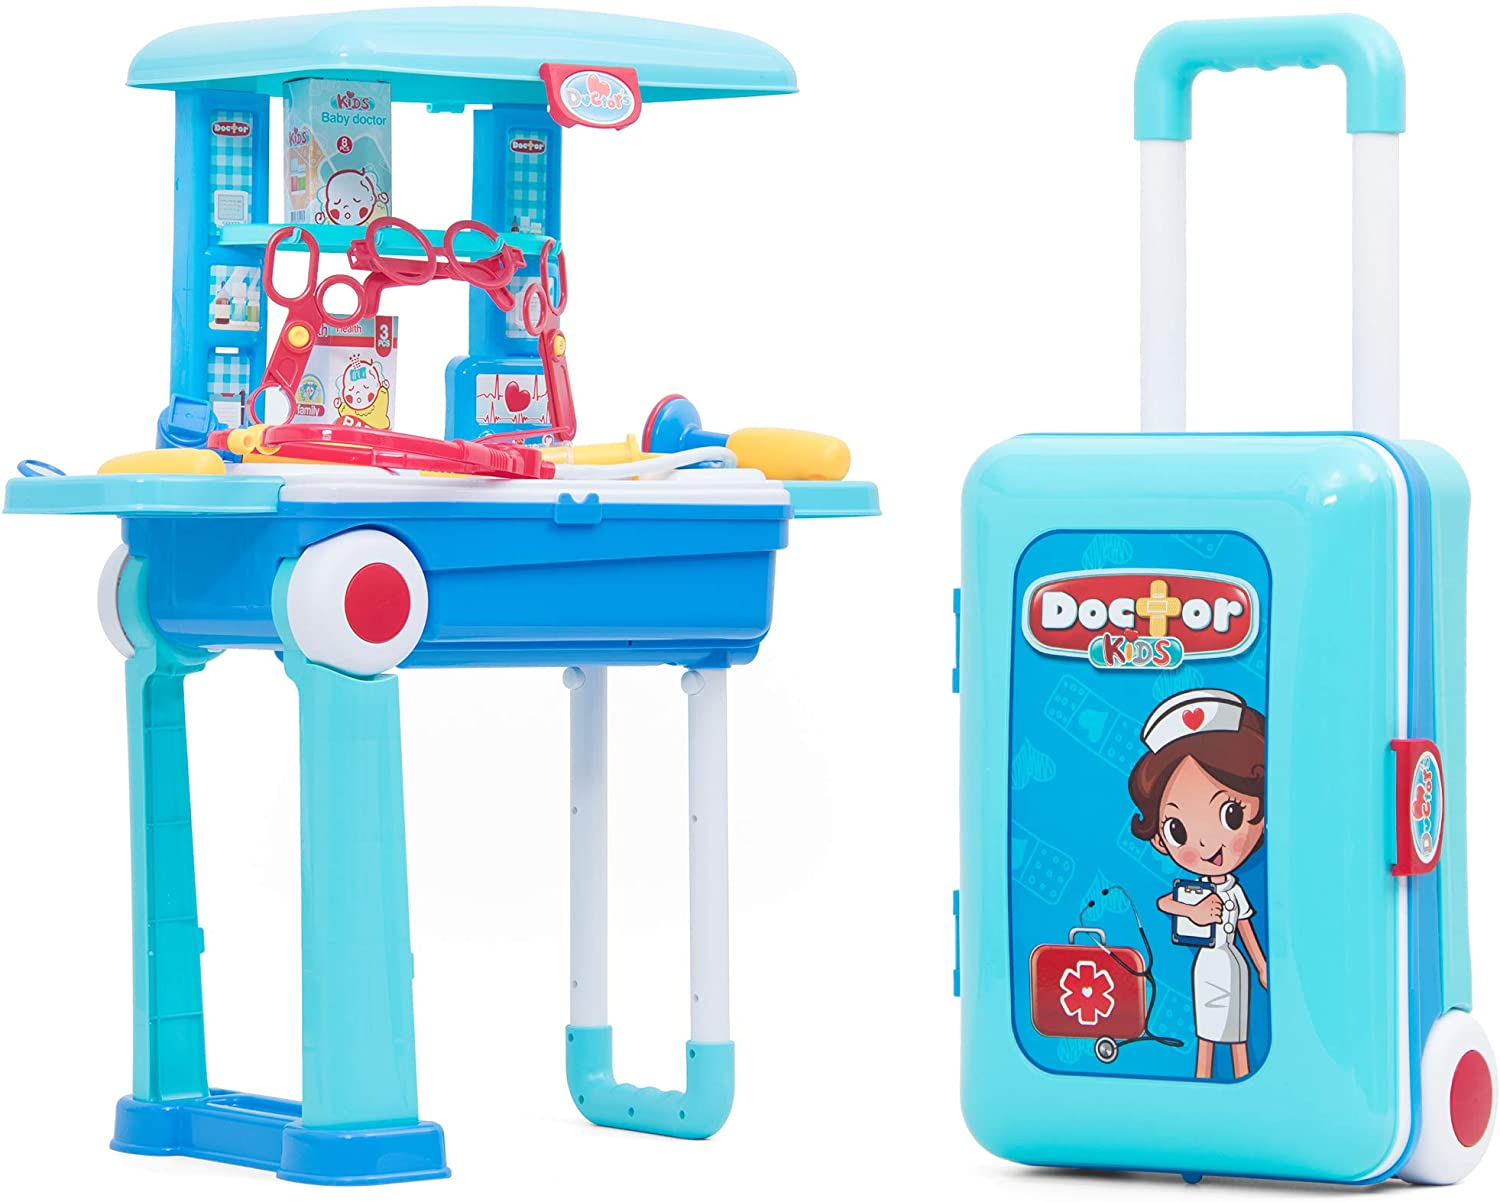 Becko Us Fondear Doctor Toy Play Set Doctor Playset Toy Medical Kits For Kids Pretend Play Toy For Children Blue